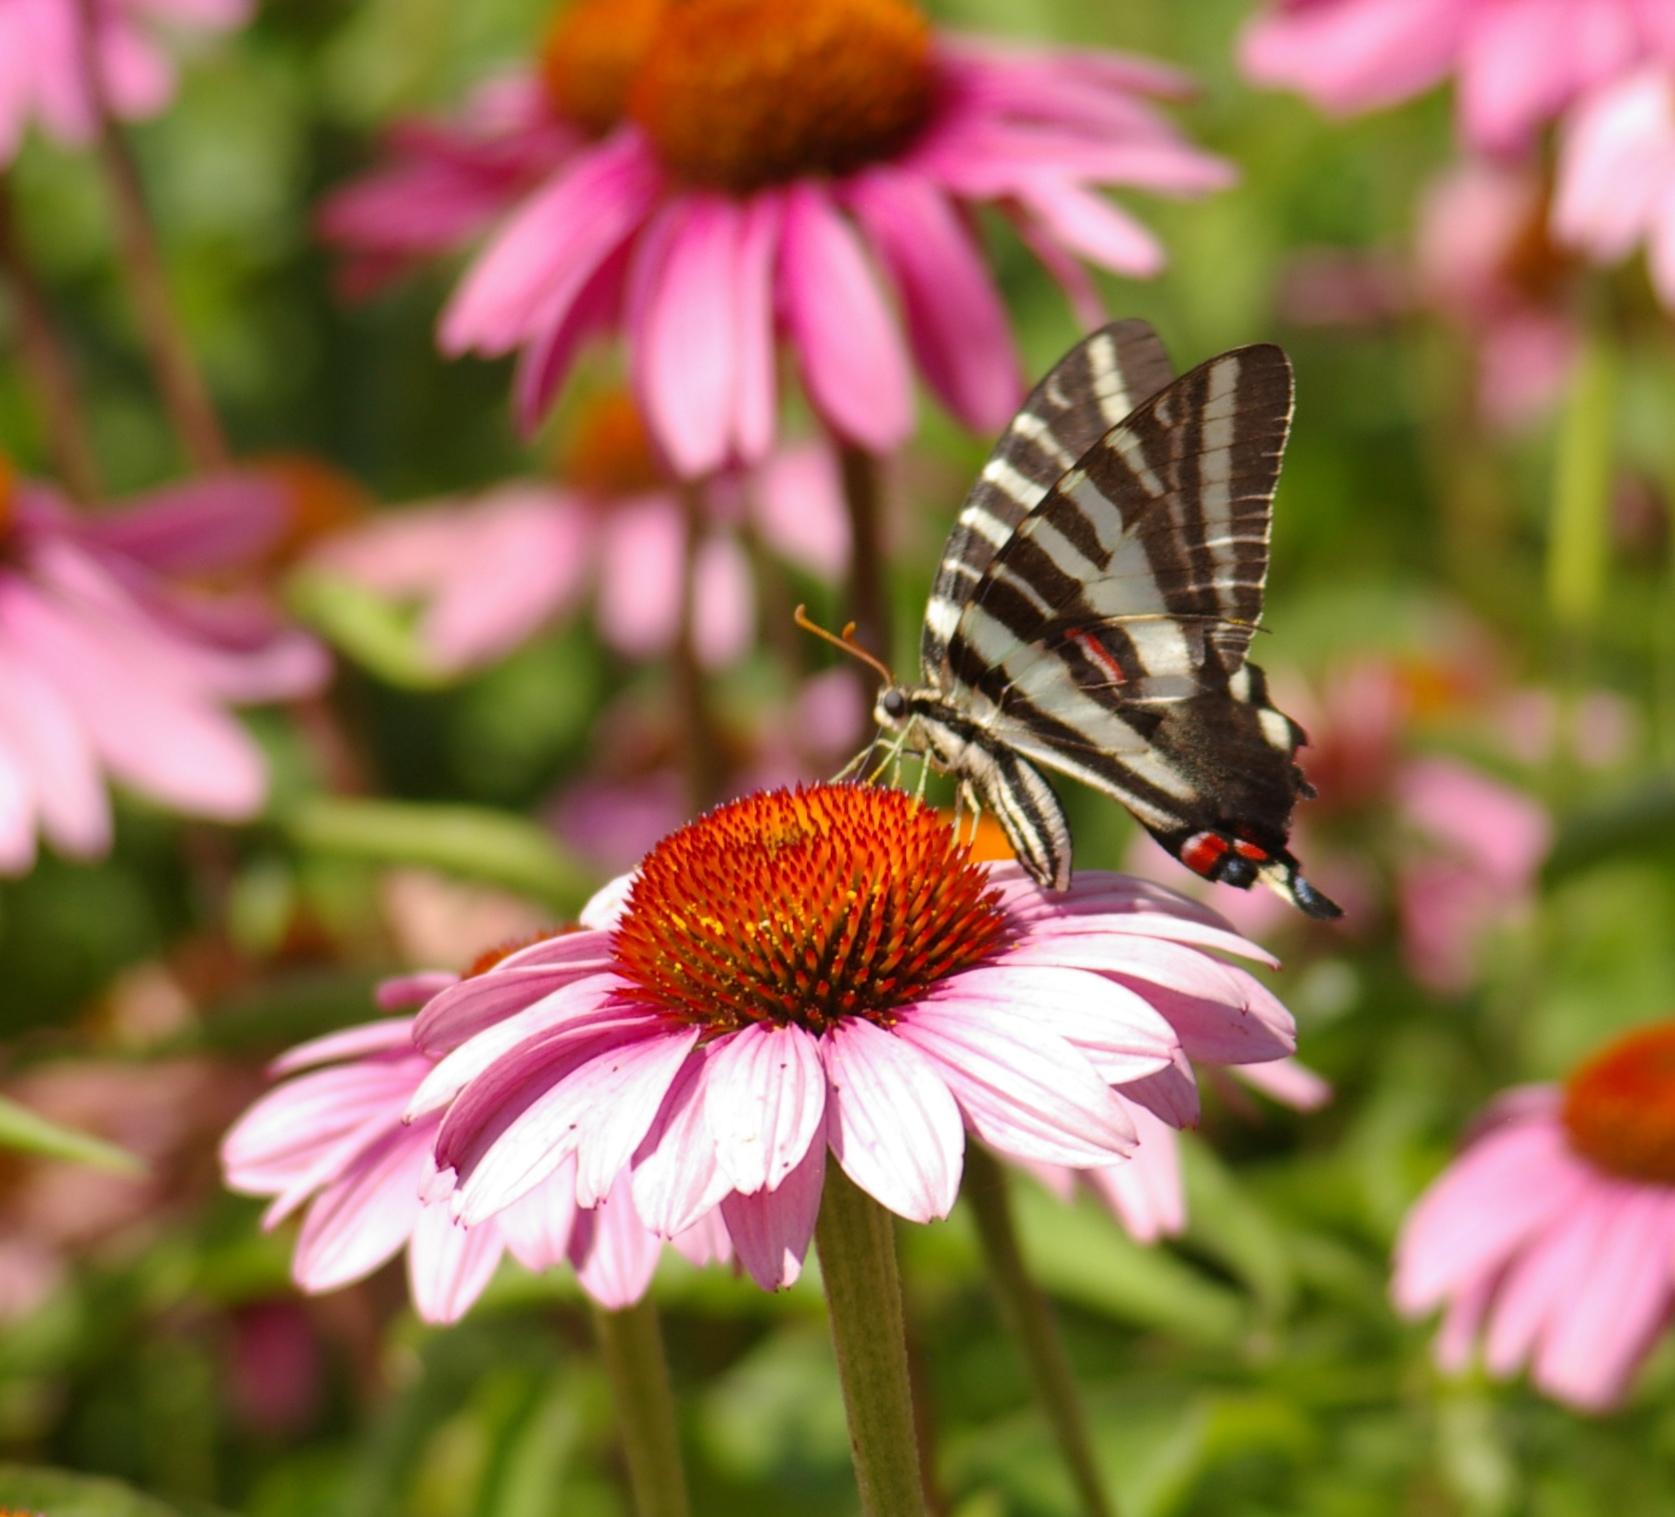 A large, black and white striped butterfly nectaring no a purple coneflower